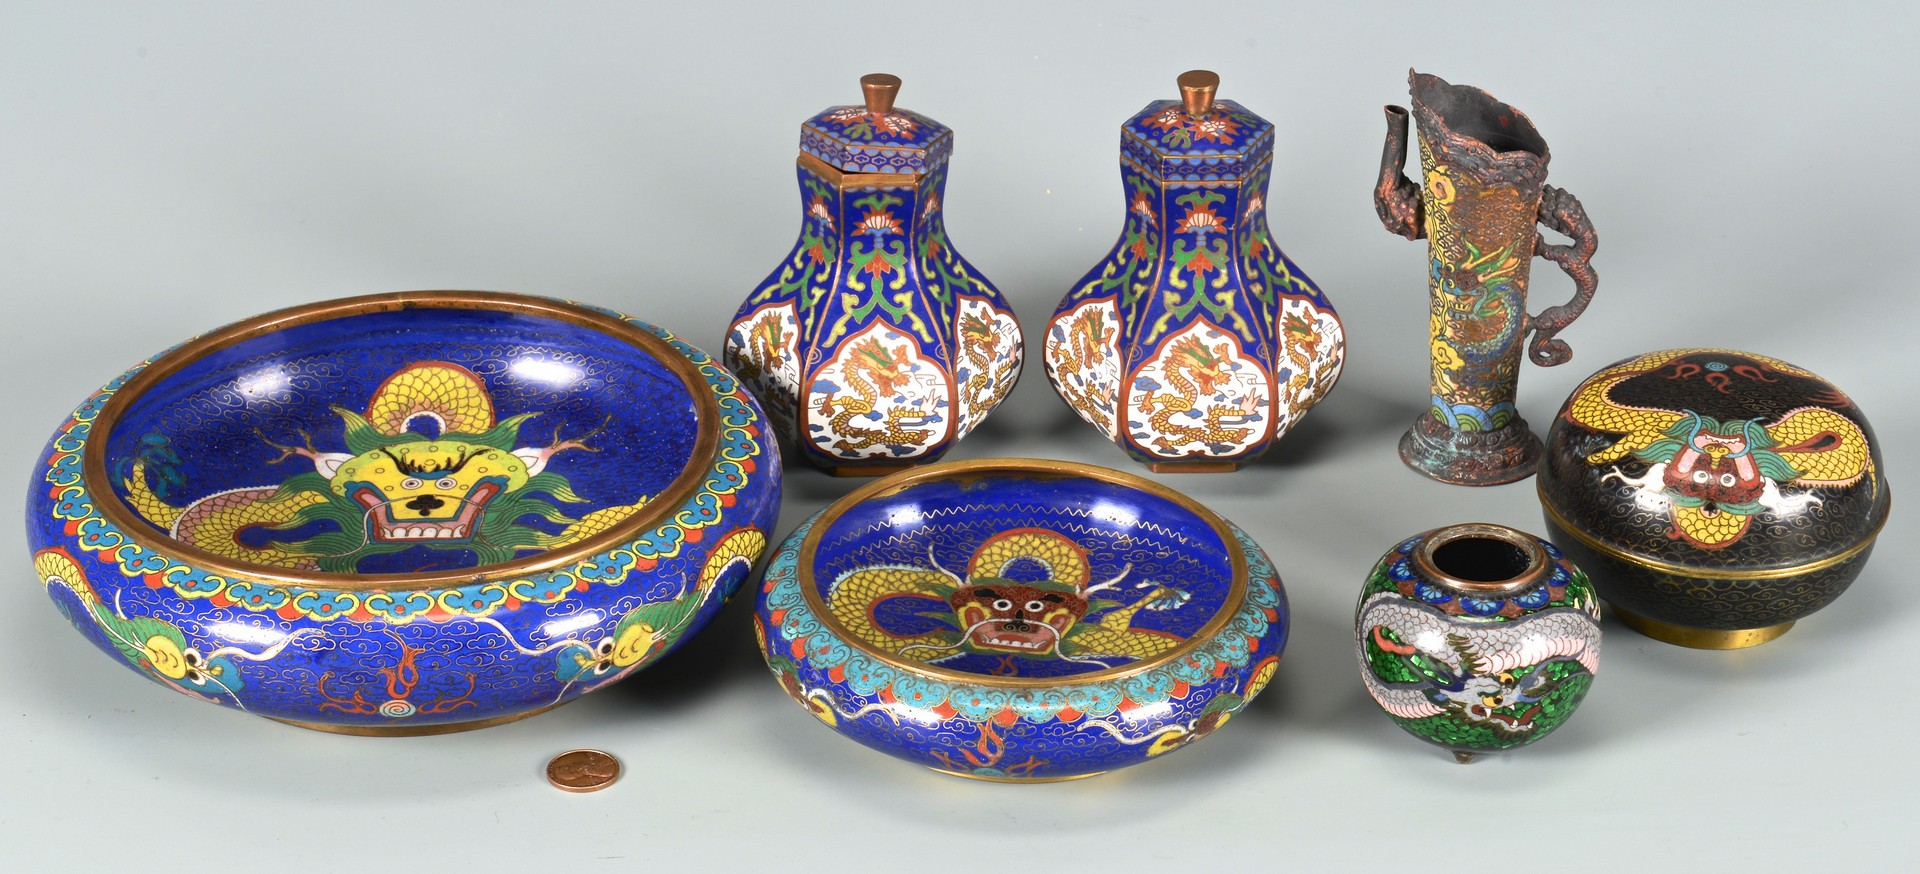 Lot 3832393: Group of 7 Cloisonne Items